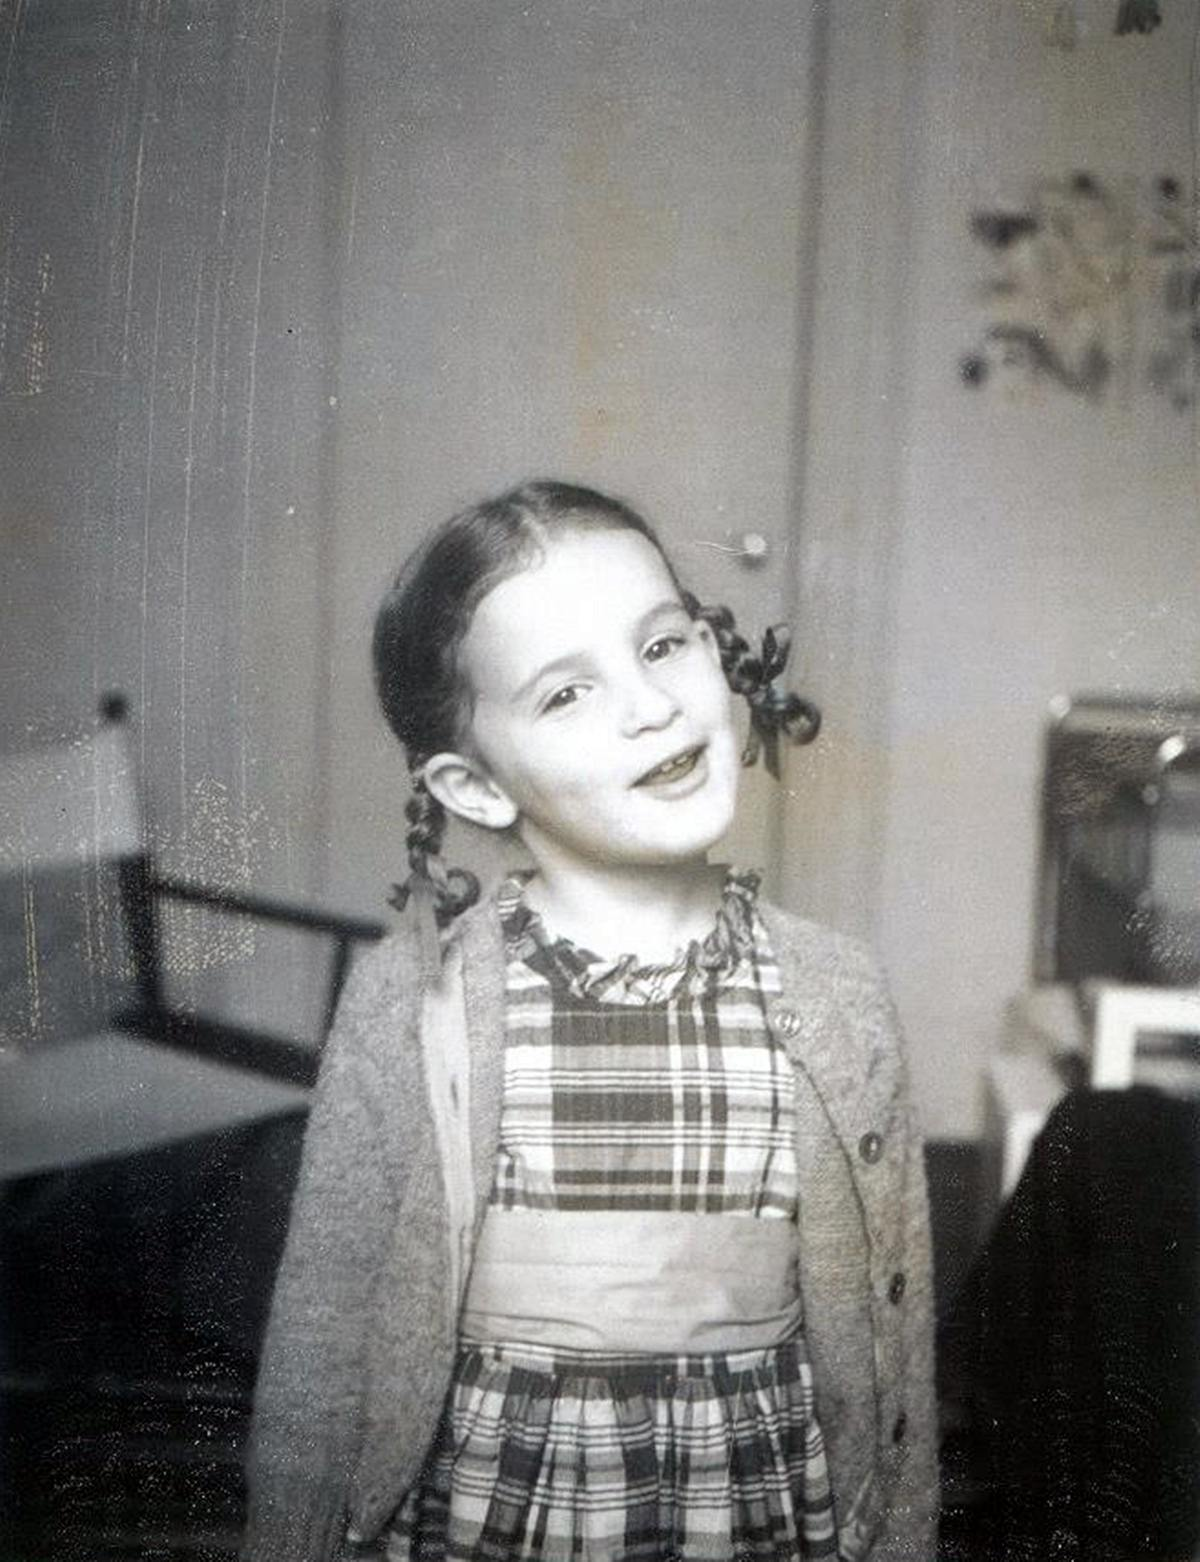 A home photo of a young Jennifer Grey, with pigtails